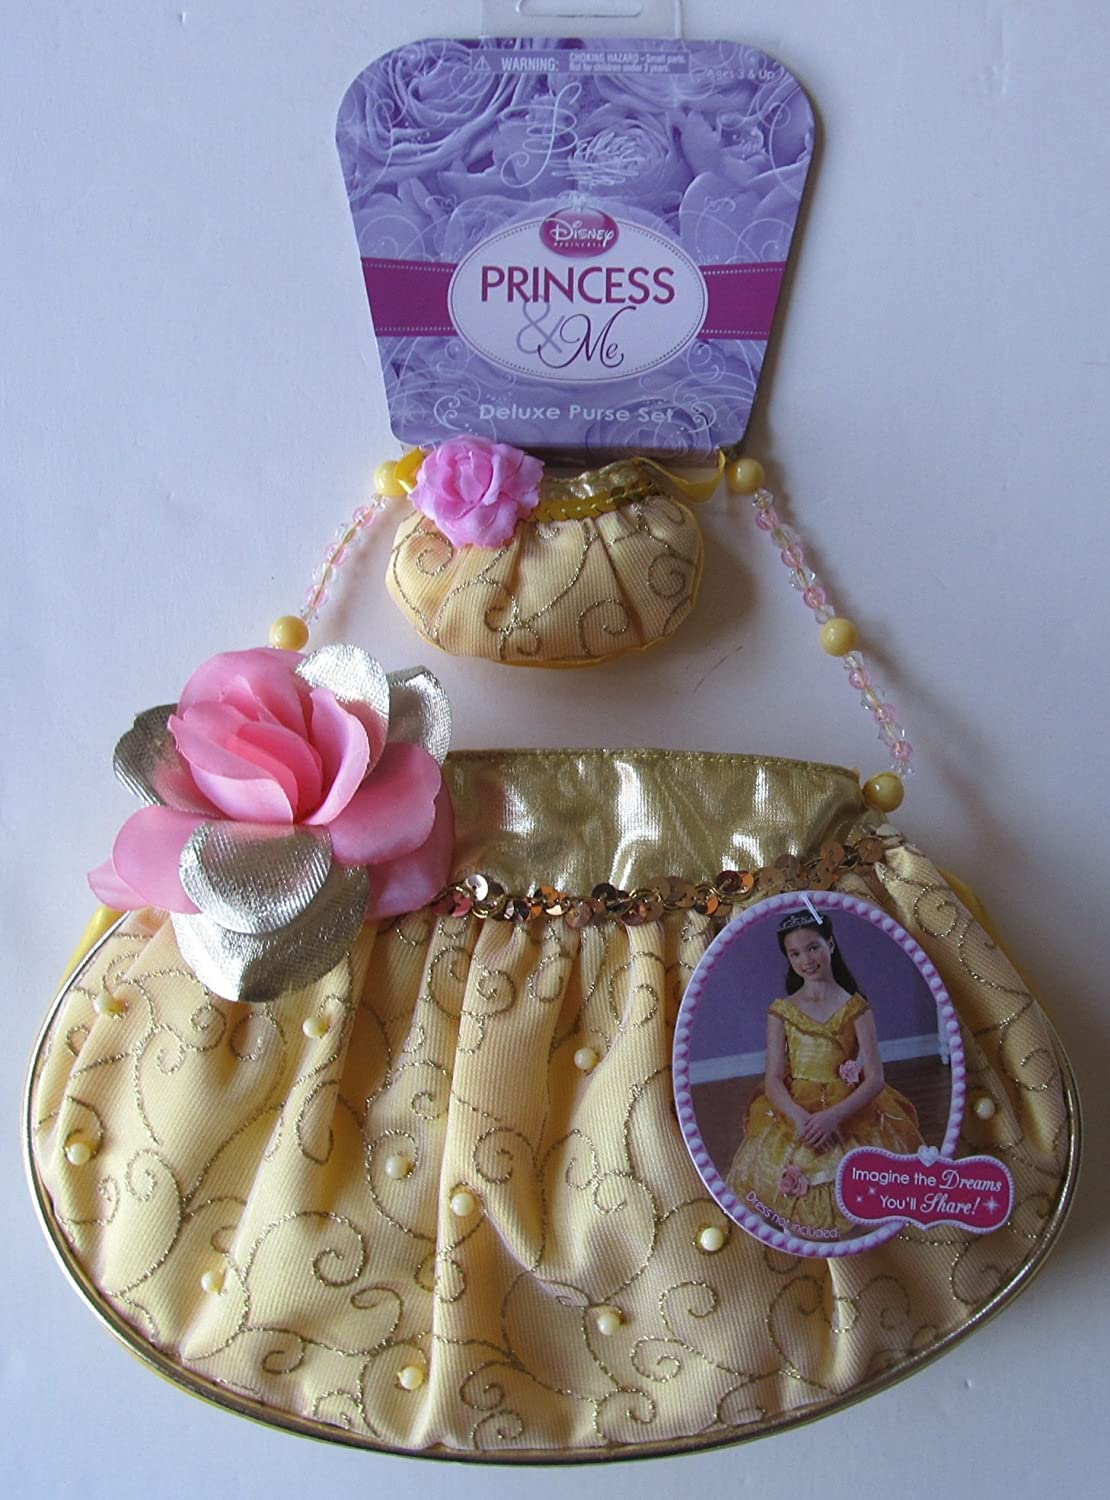 de32db492cc1 Amazon.com: Disney Princess and Me Deluxe Belle Child Size Purse and ...